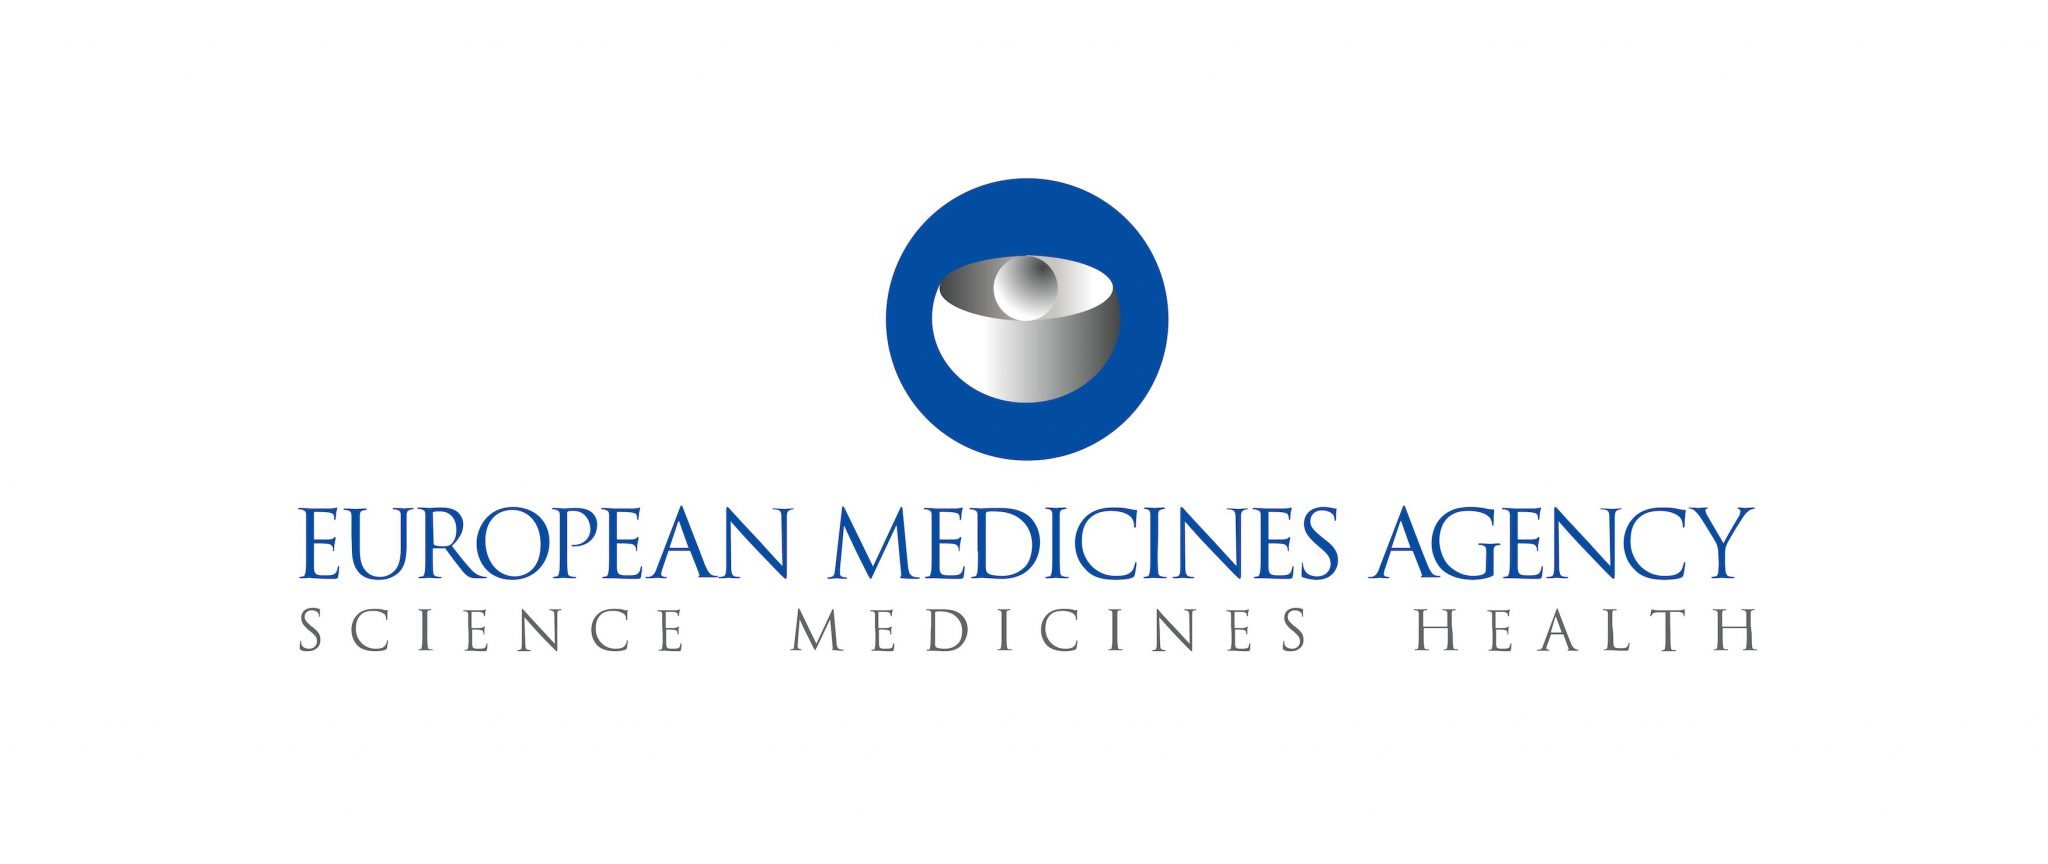 Research on nanomedicine: apply for the new tender funded by the EMA on quality, efficacy and safety before April 30, 2021!